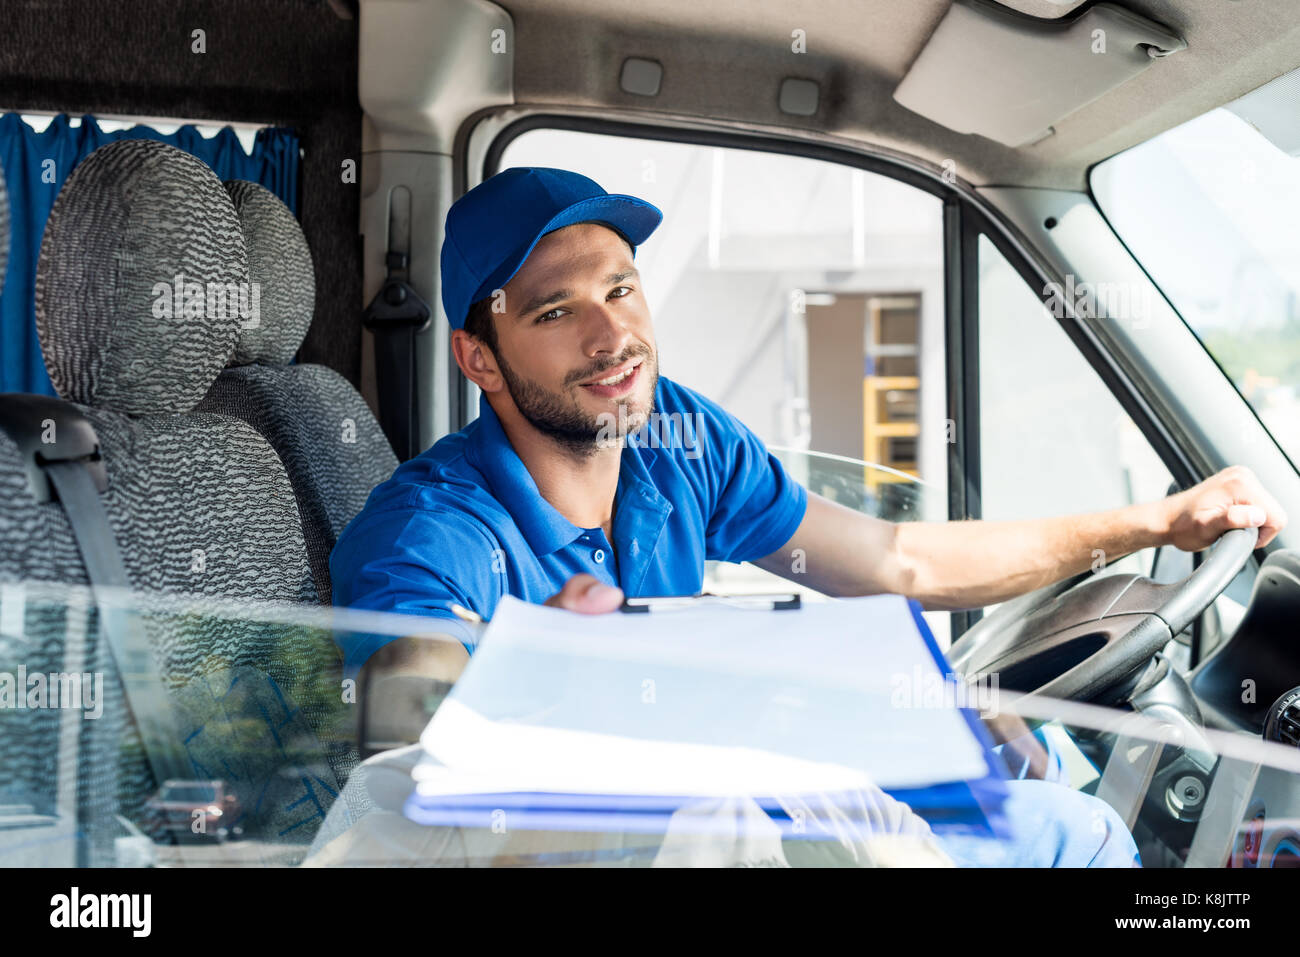 delivery man with clipboard - Stock Image